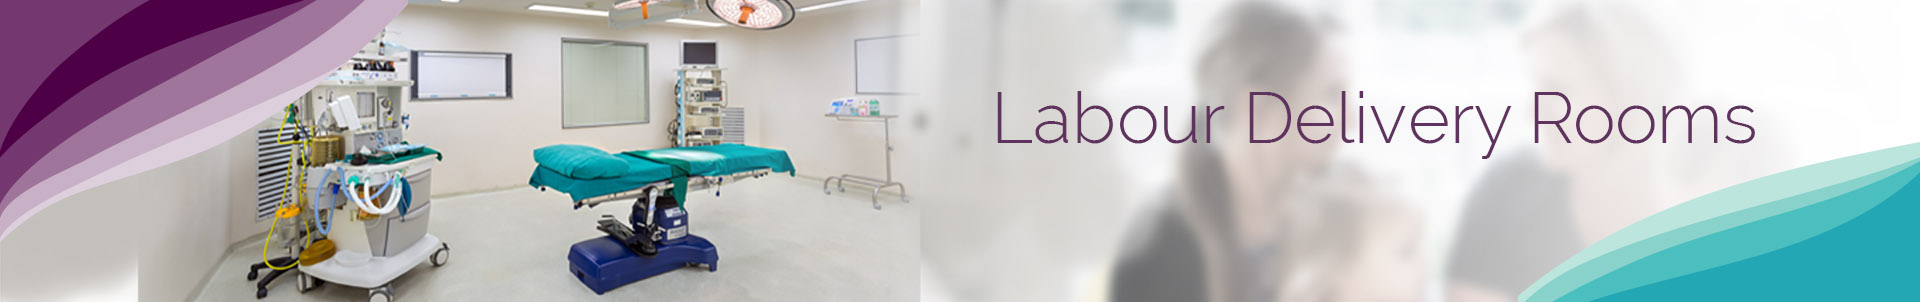 Labour Delivery Rooms